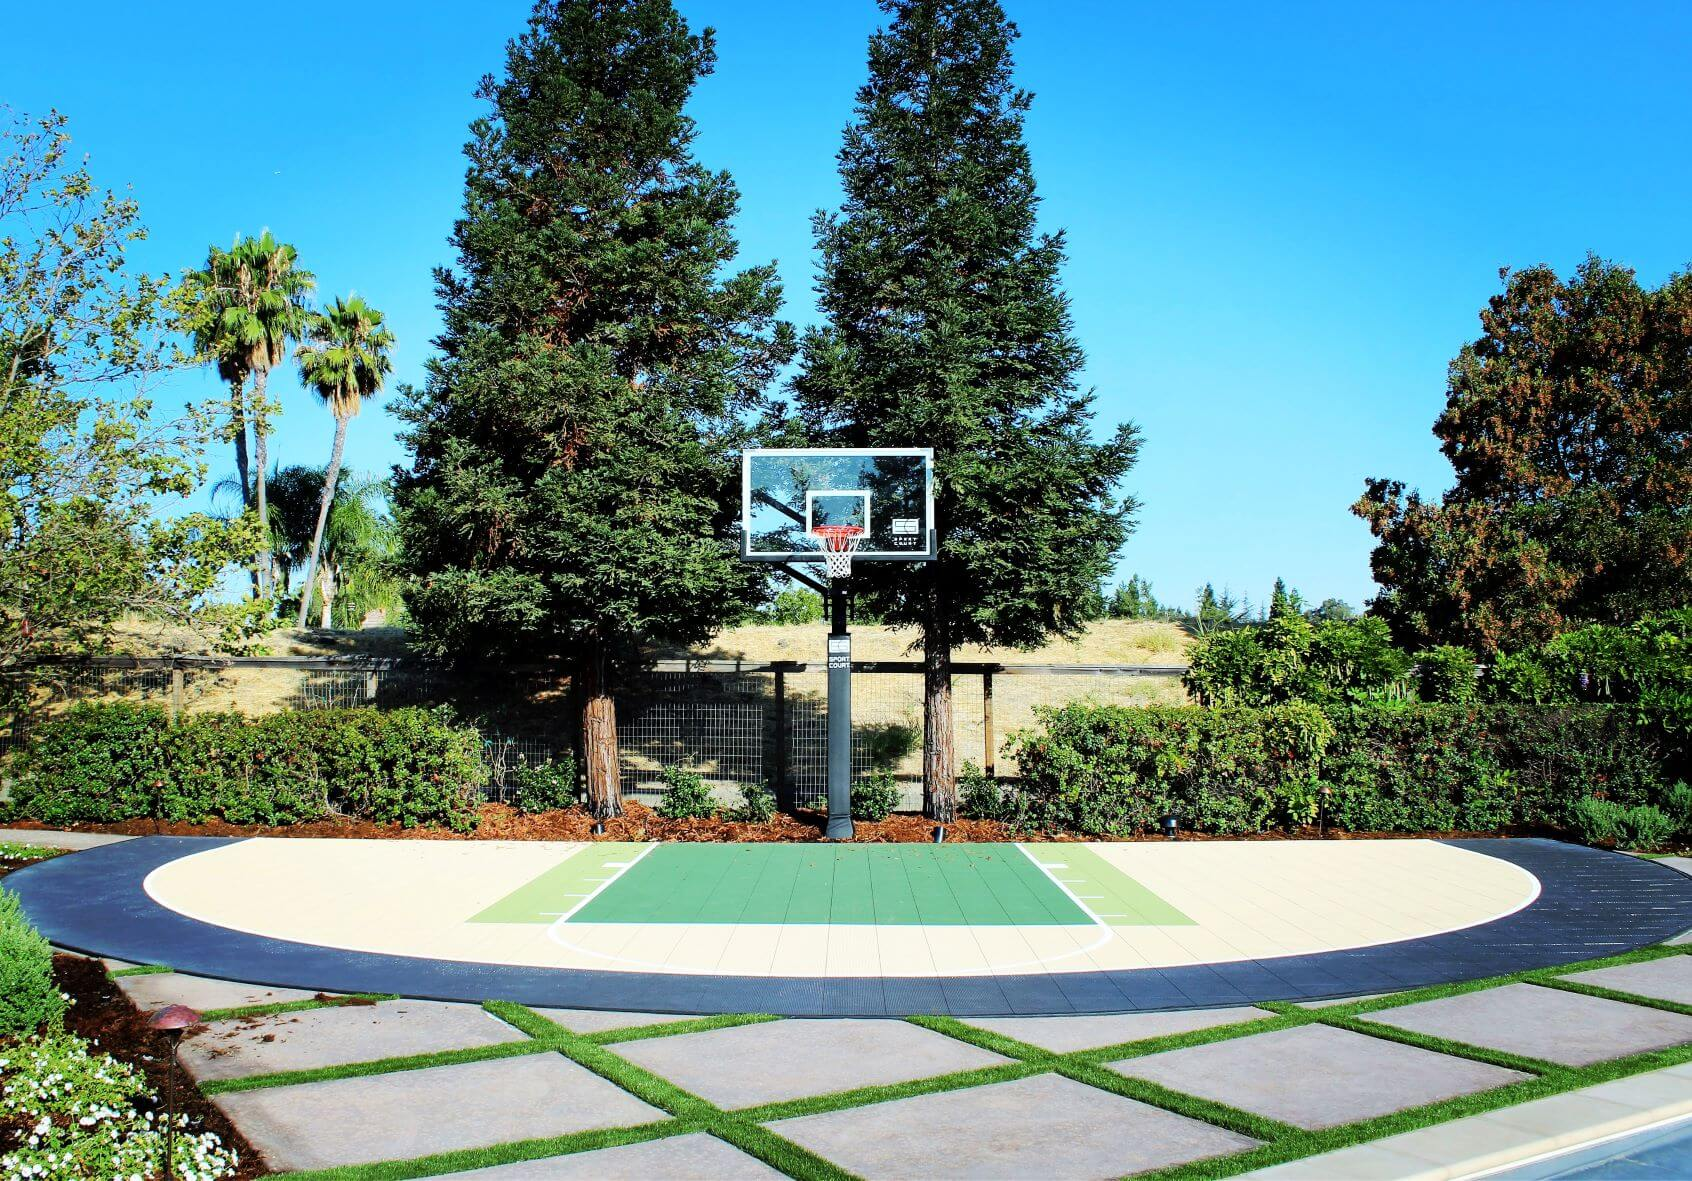 Design Ideas Backyard Basketball Court Allsport America Inc